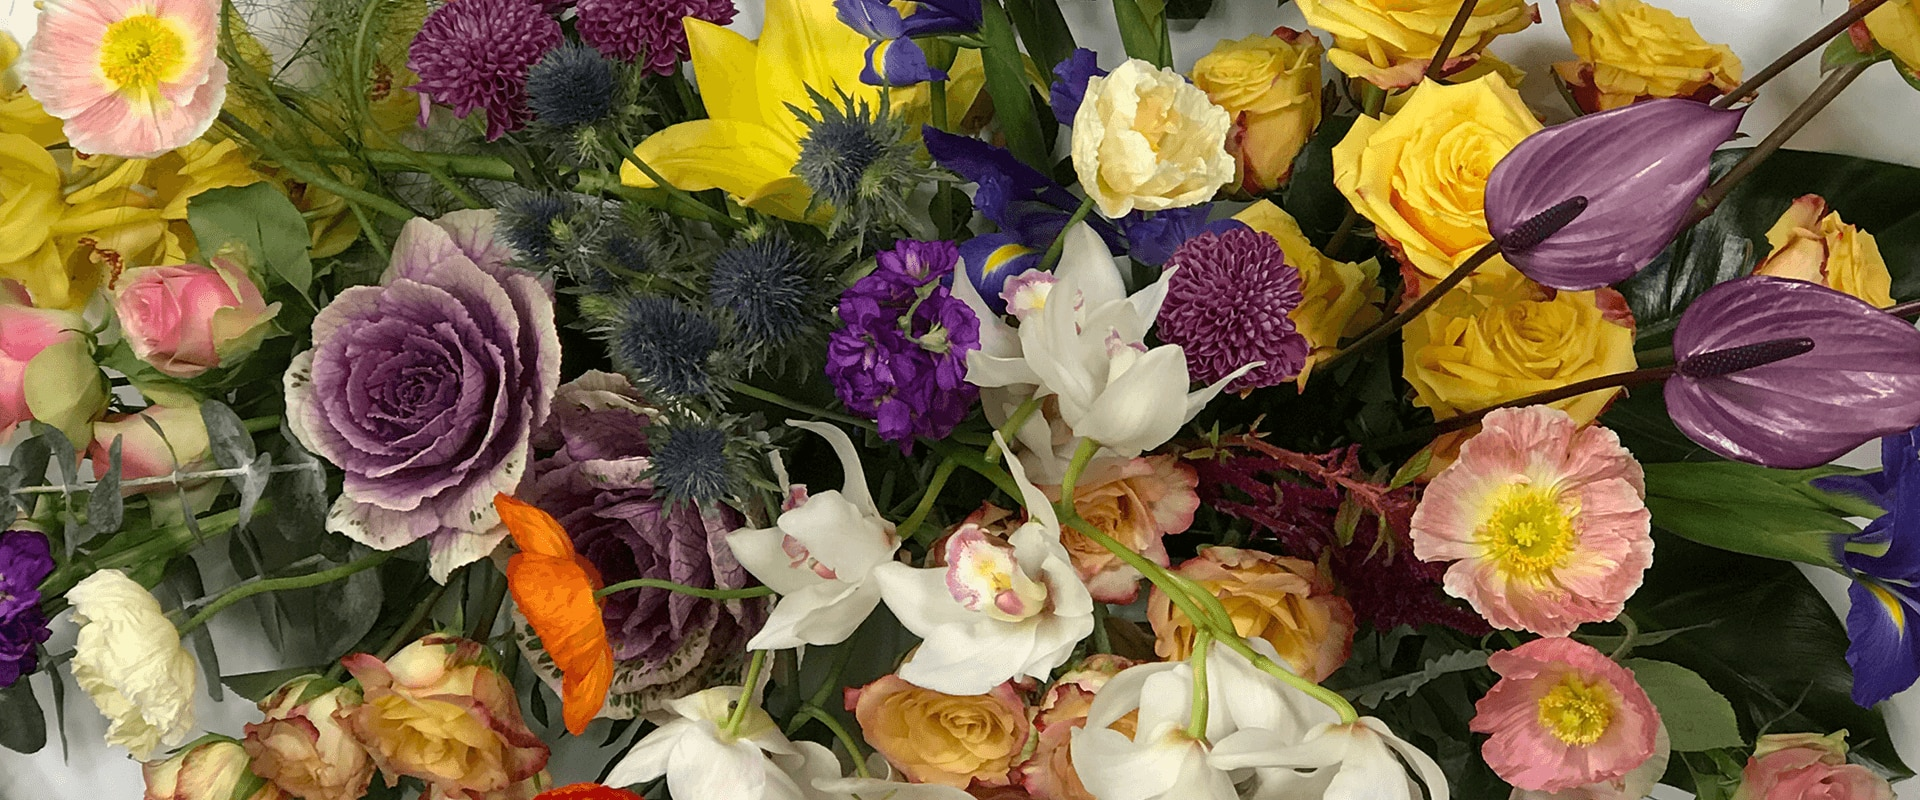 Neutral Bay Florist Order Flowers Sydneywide Cosmo S Florist